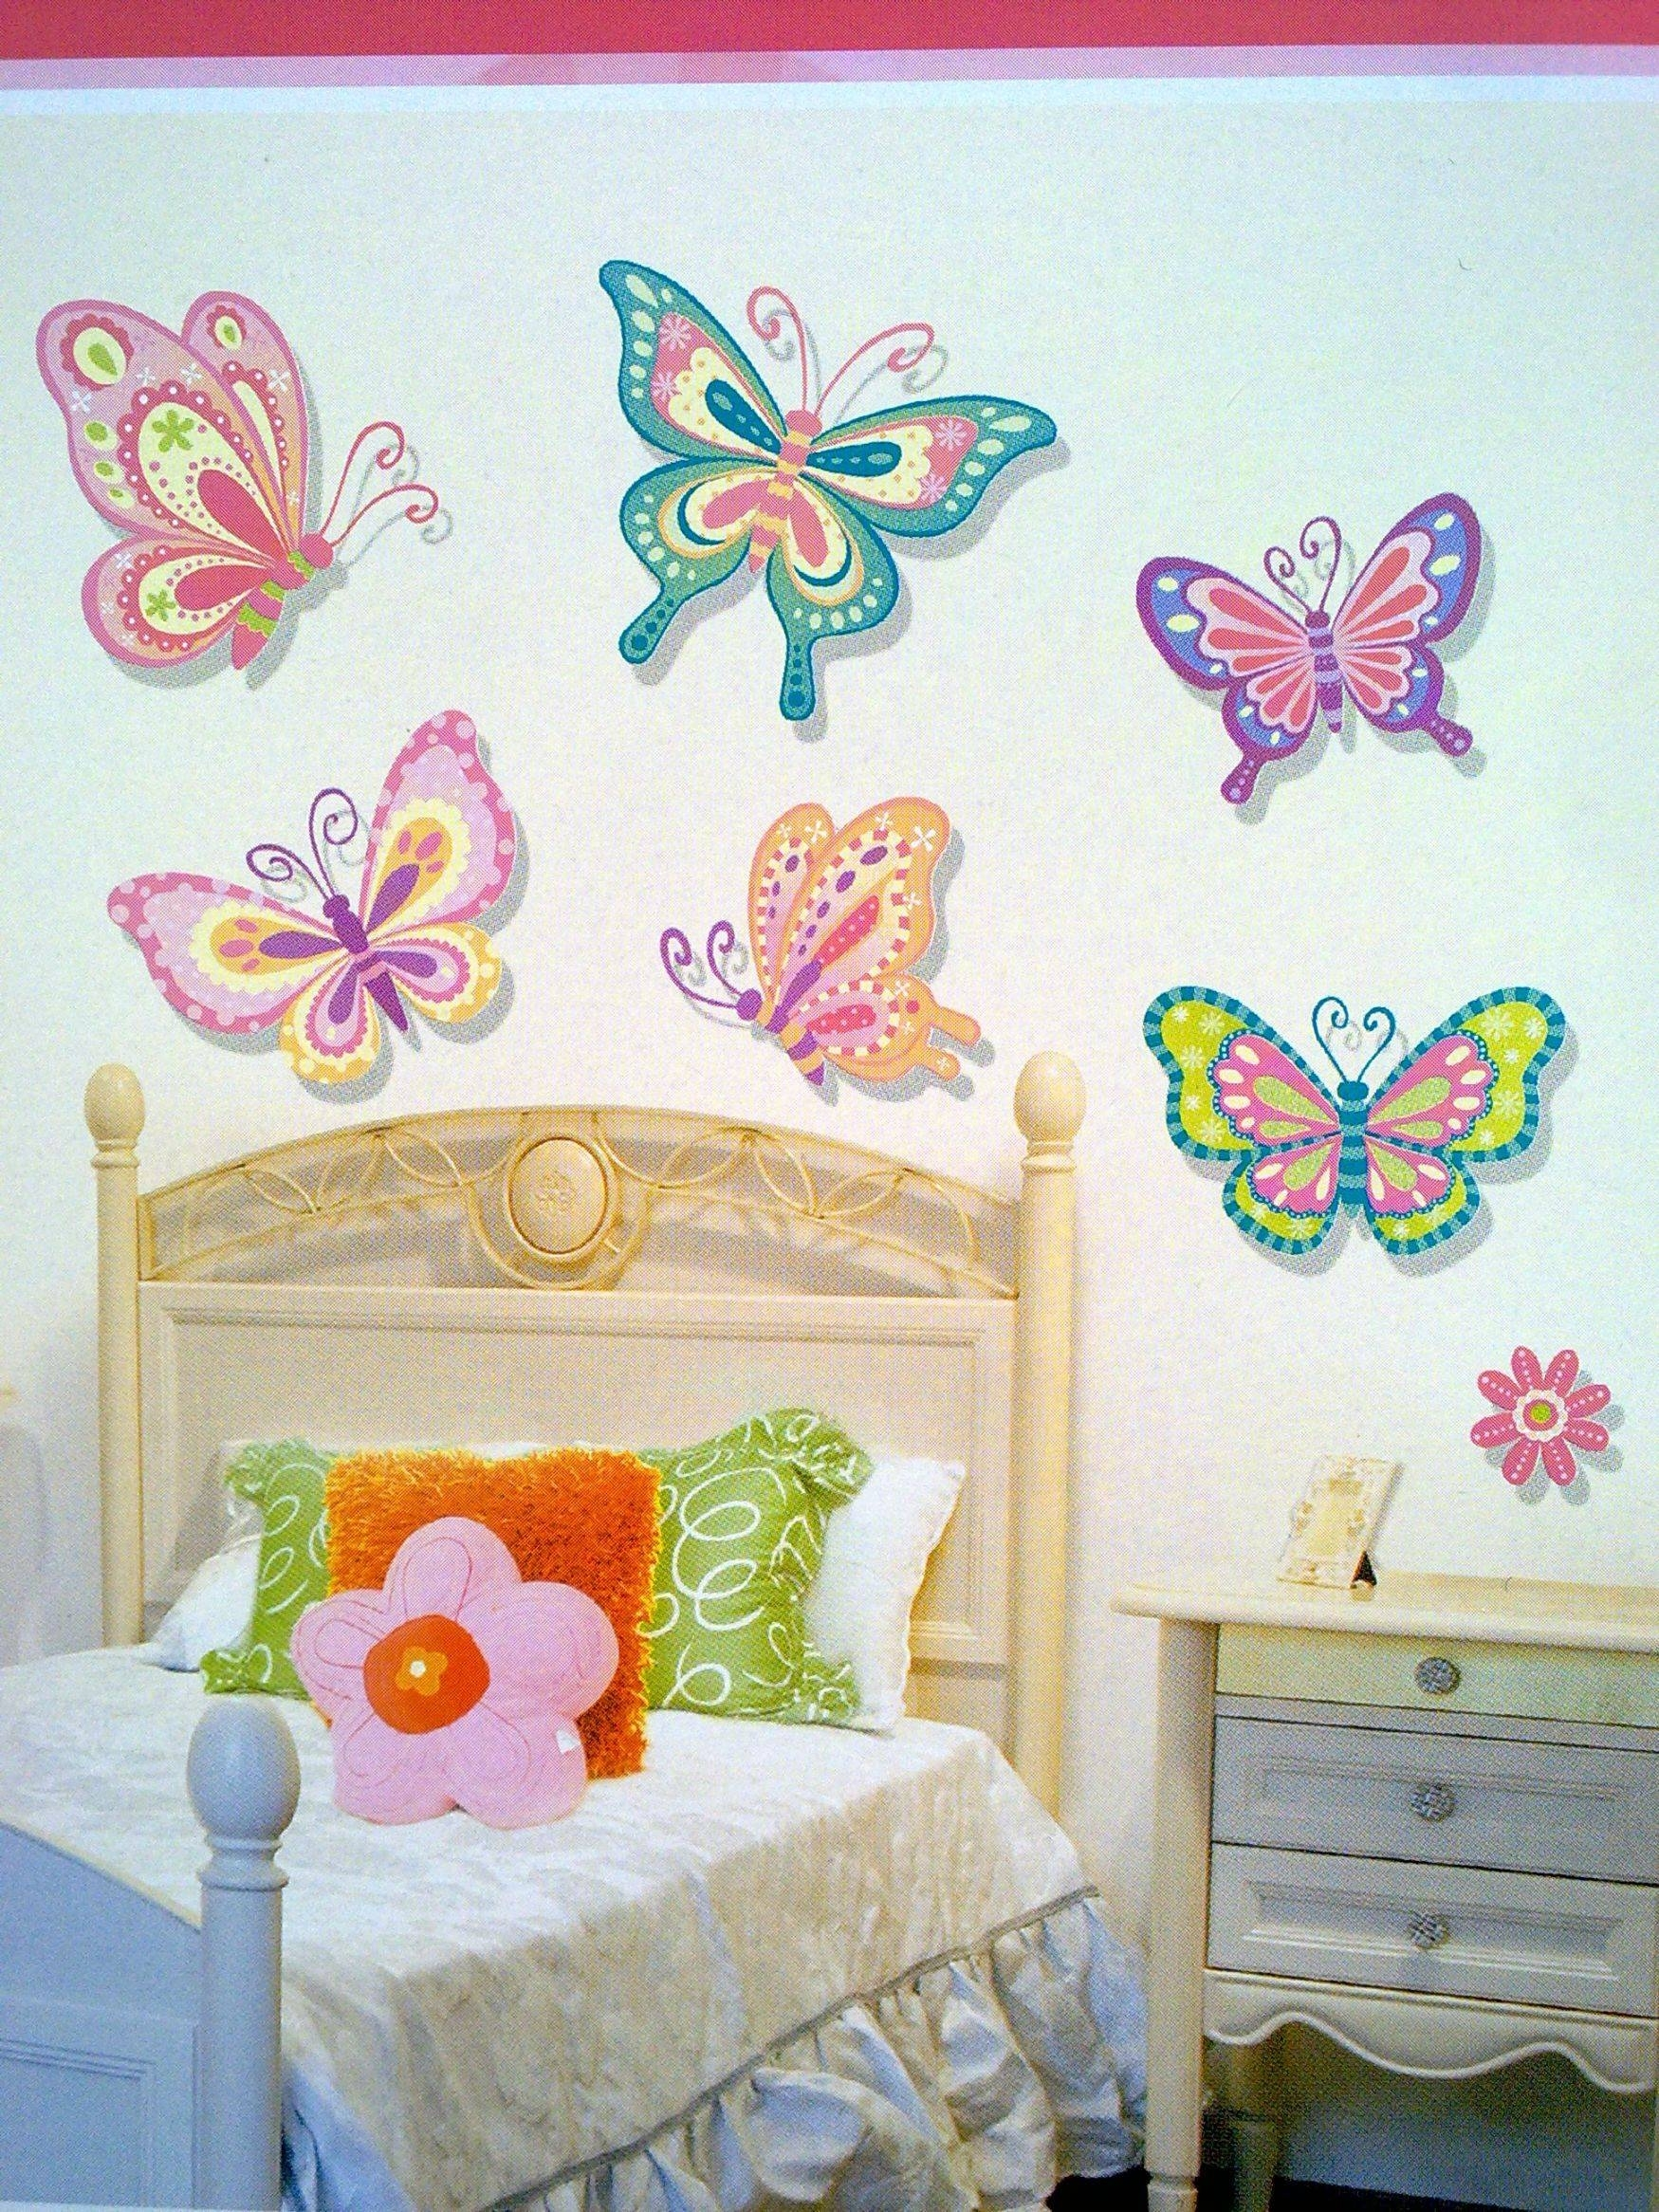 Wall Decor : Full Wall Decals Butterfly Wall Stickers Wall Art Within Most Recently Released Fabric Butterfly Wall Art (Gallery 2 of 15)